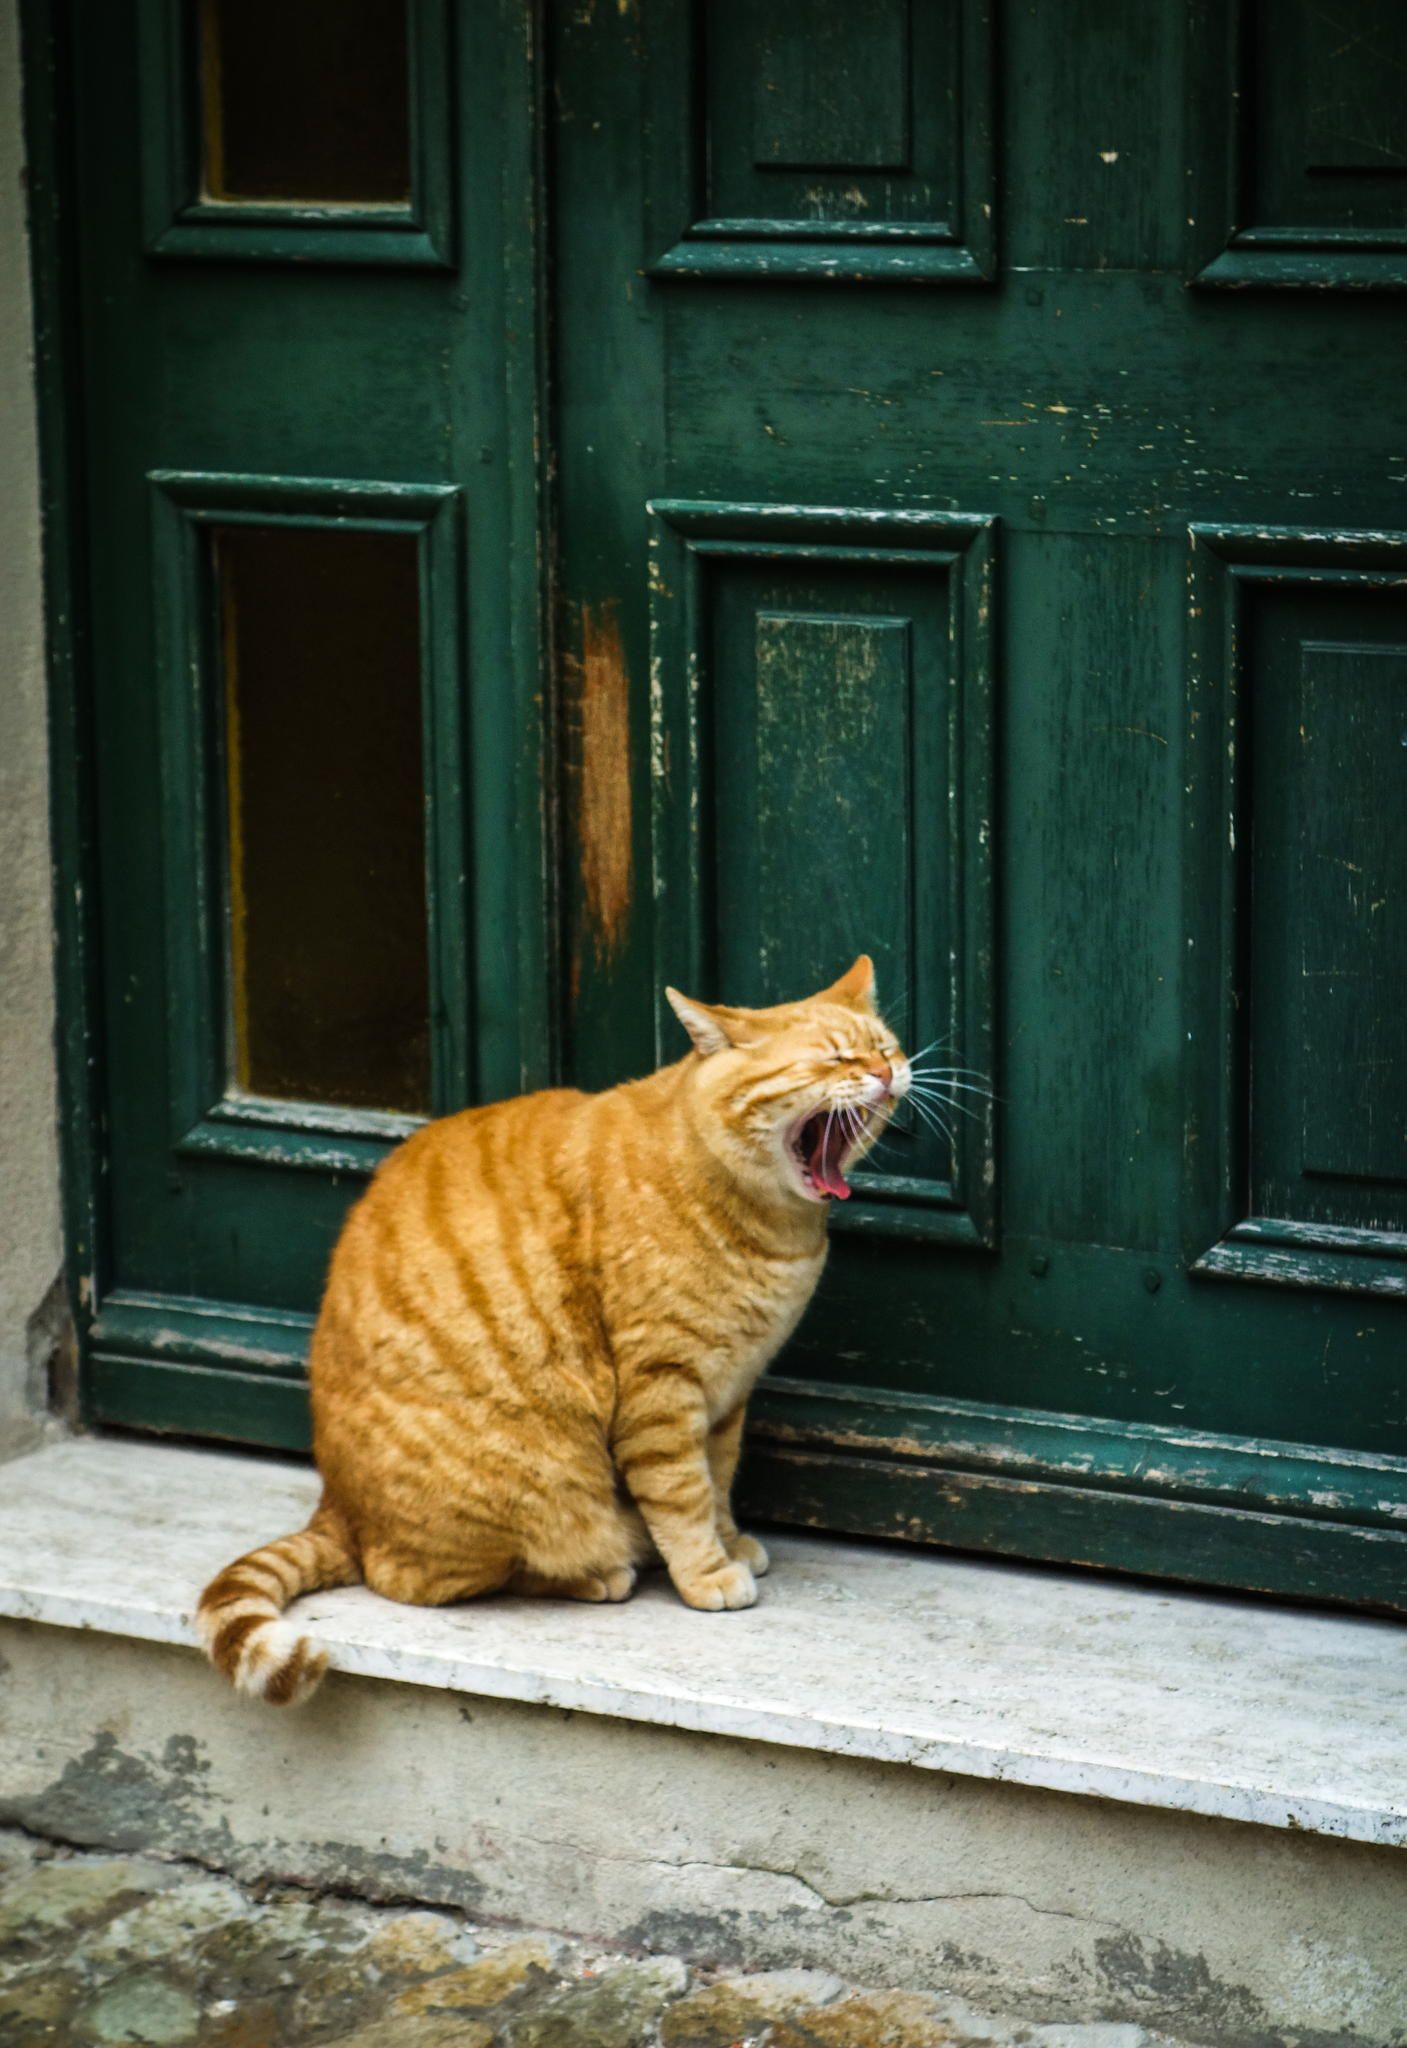 It S Been A Long Day Cat Yawning Cats And Kittens Tabby Cat